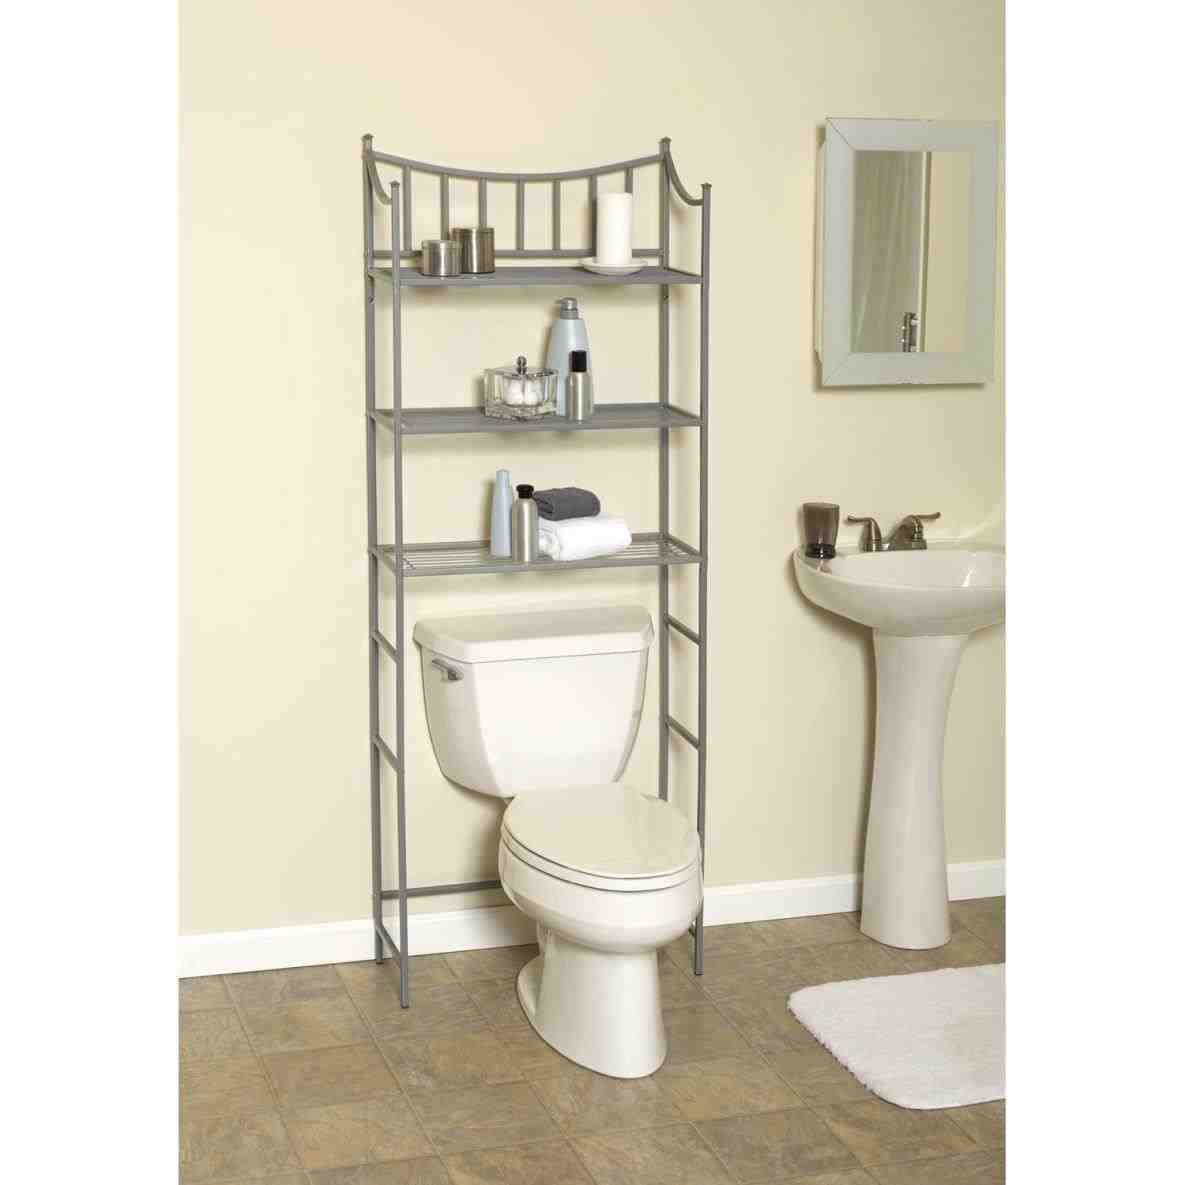 This Over Toilet Shelf Ikea Bathroom Shelves Nz Bathroom Shelves